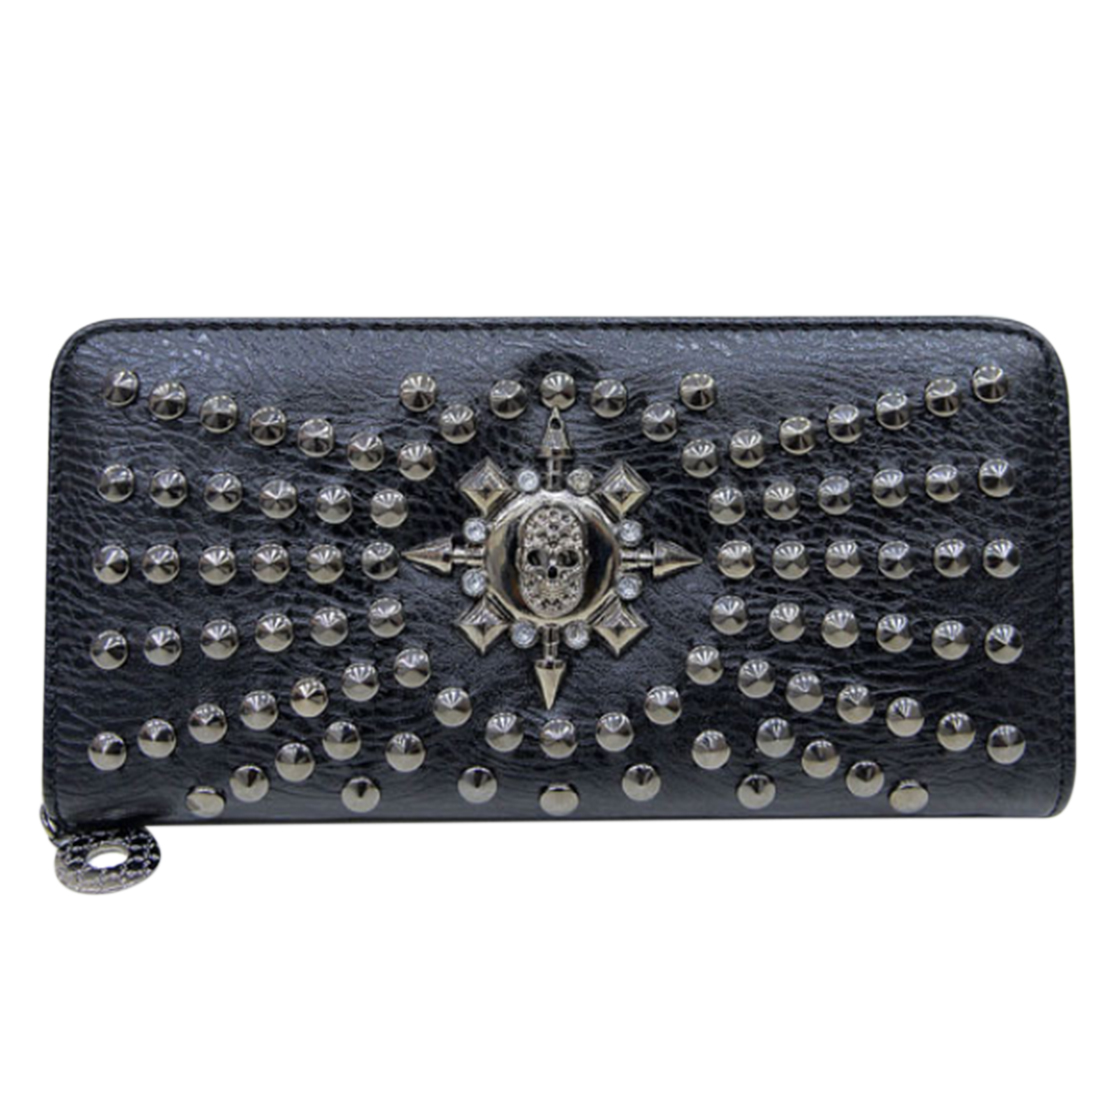 Fashion Rivet Skull Handbag Long Wallet Women Phone Case Clutch with Chain - Black